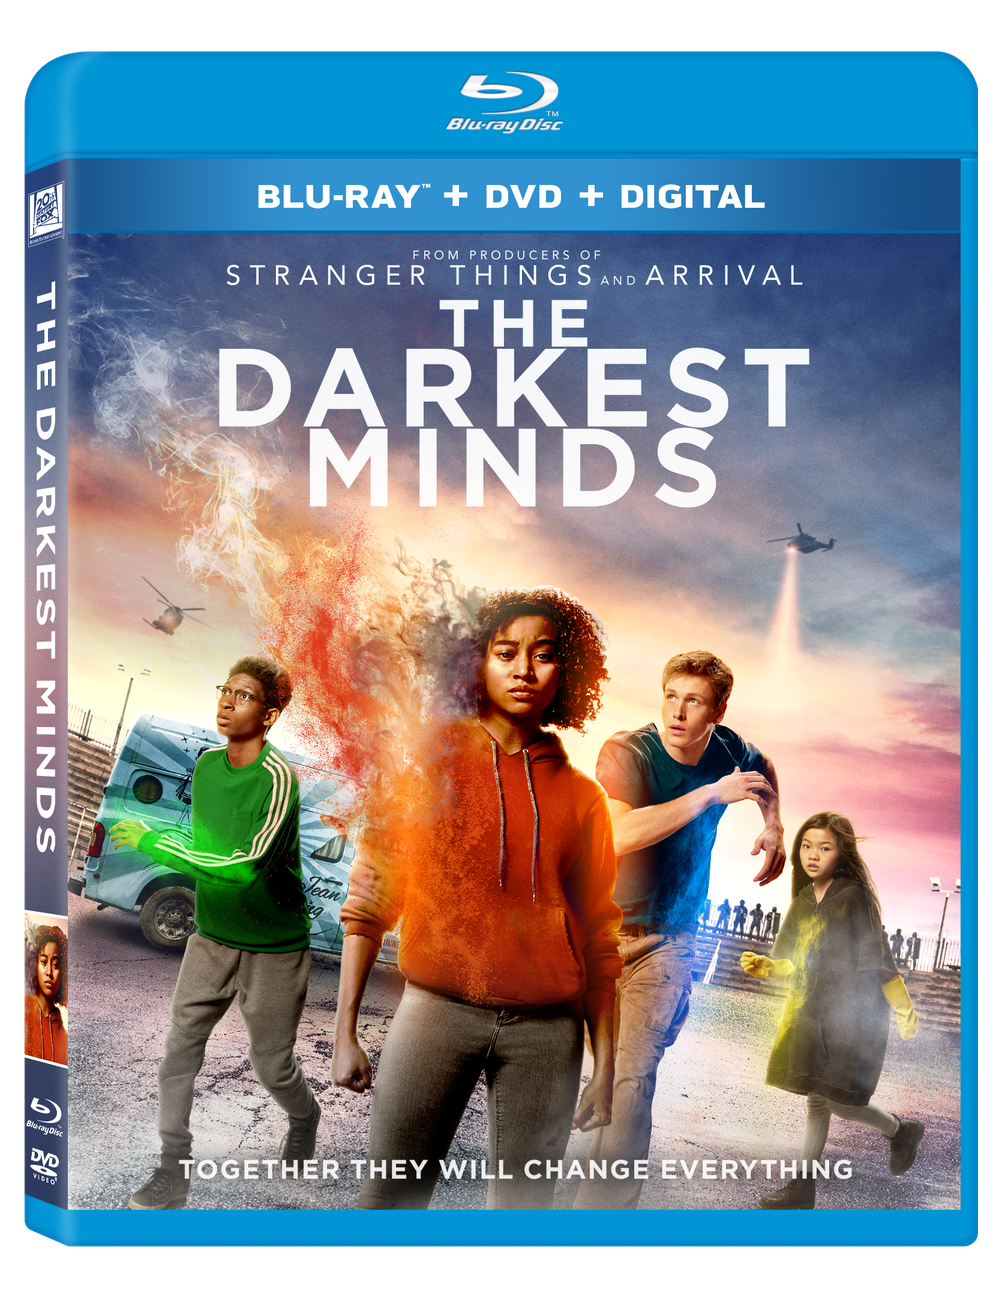 The Darkest Minds #DarkestMinds #movie #ad